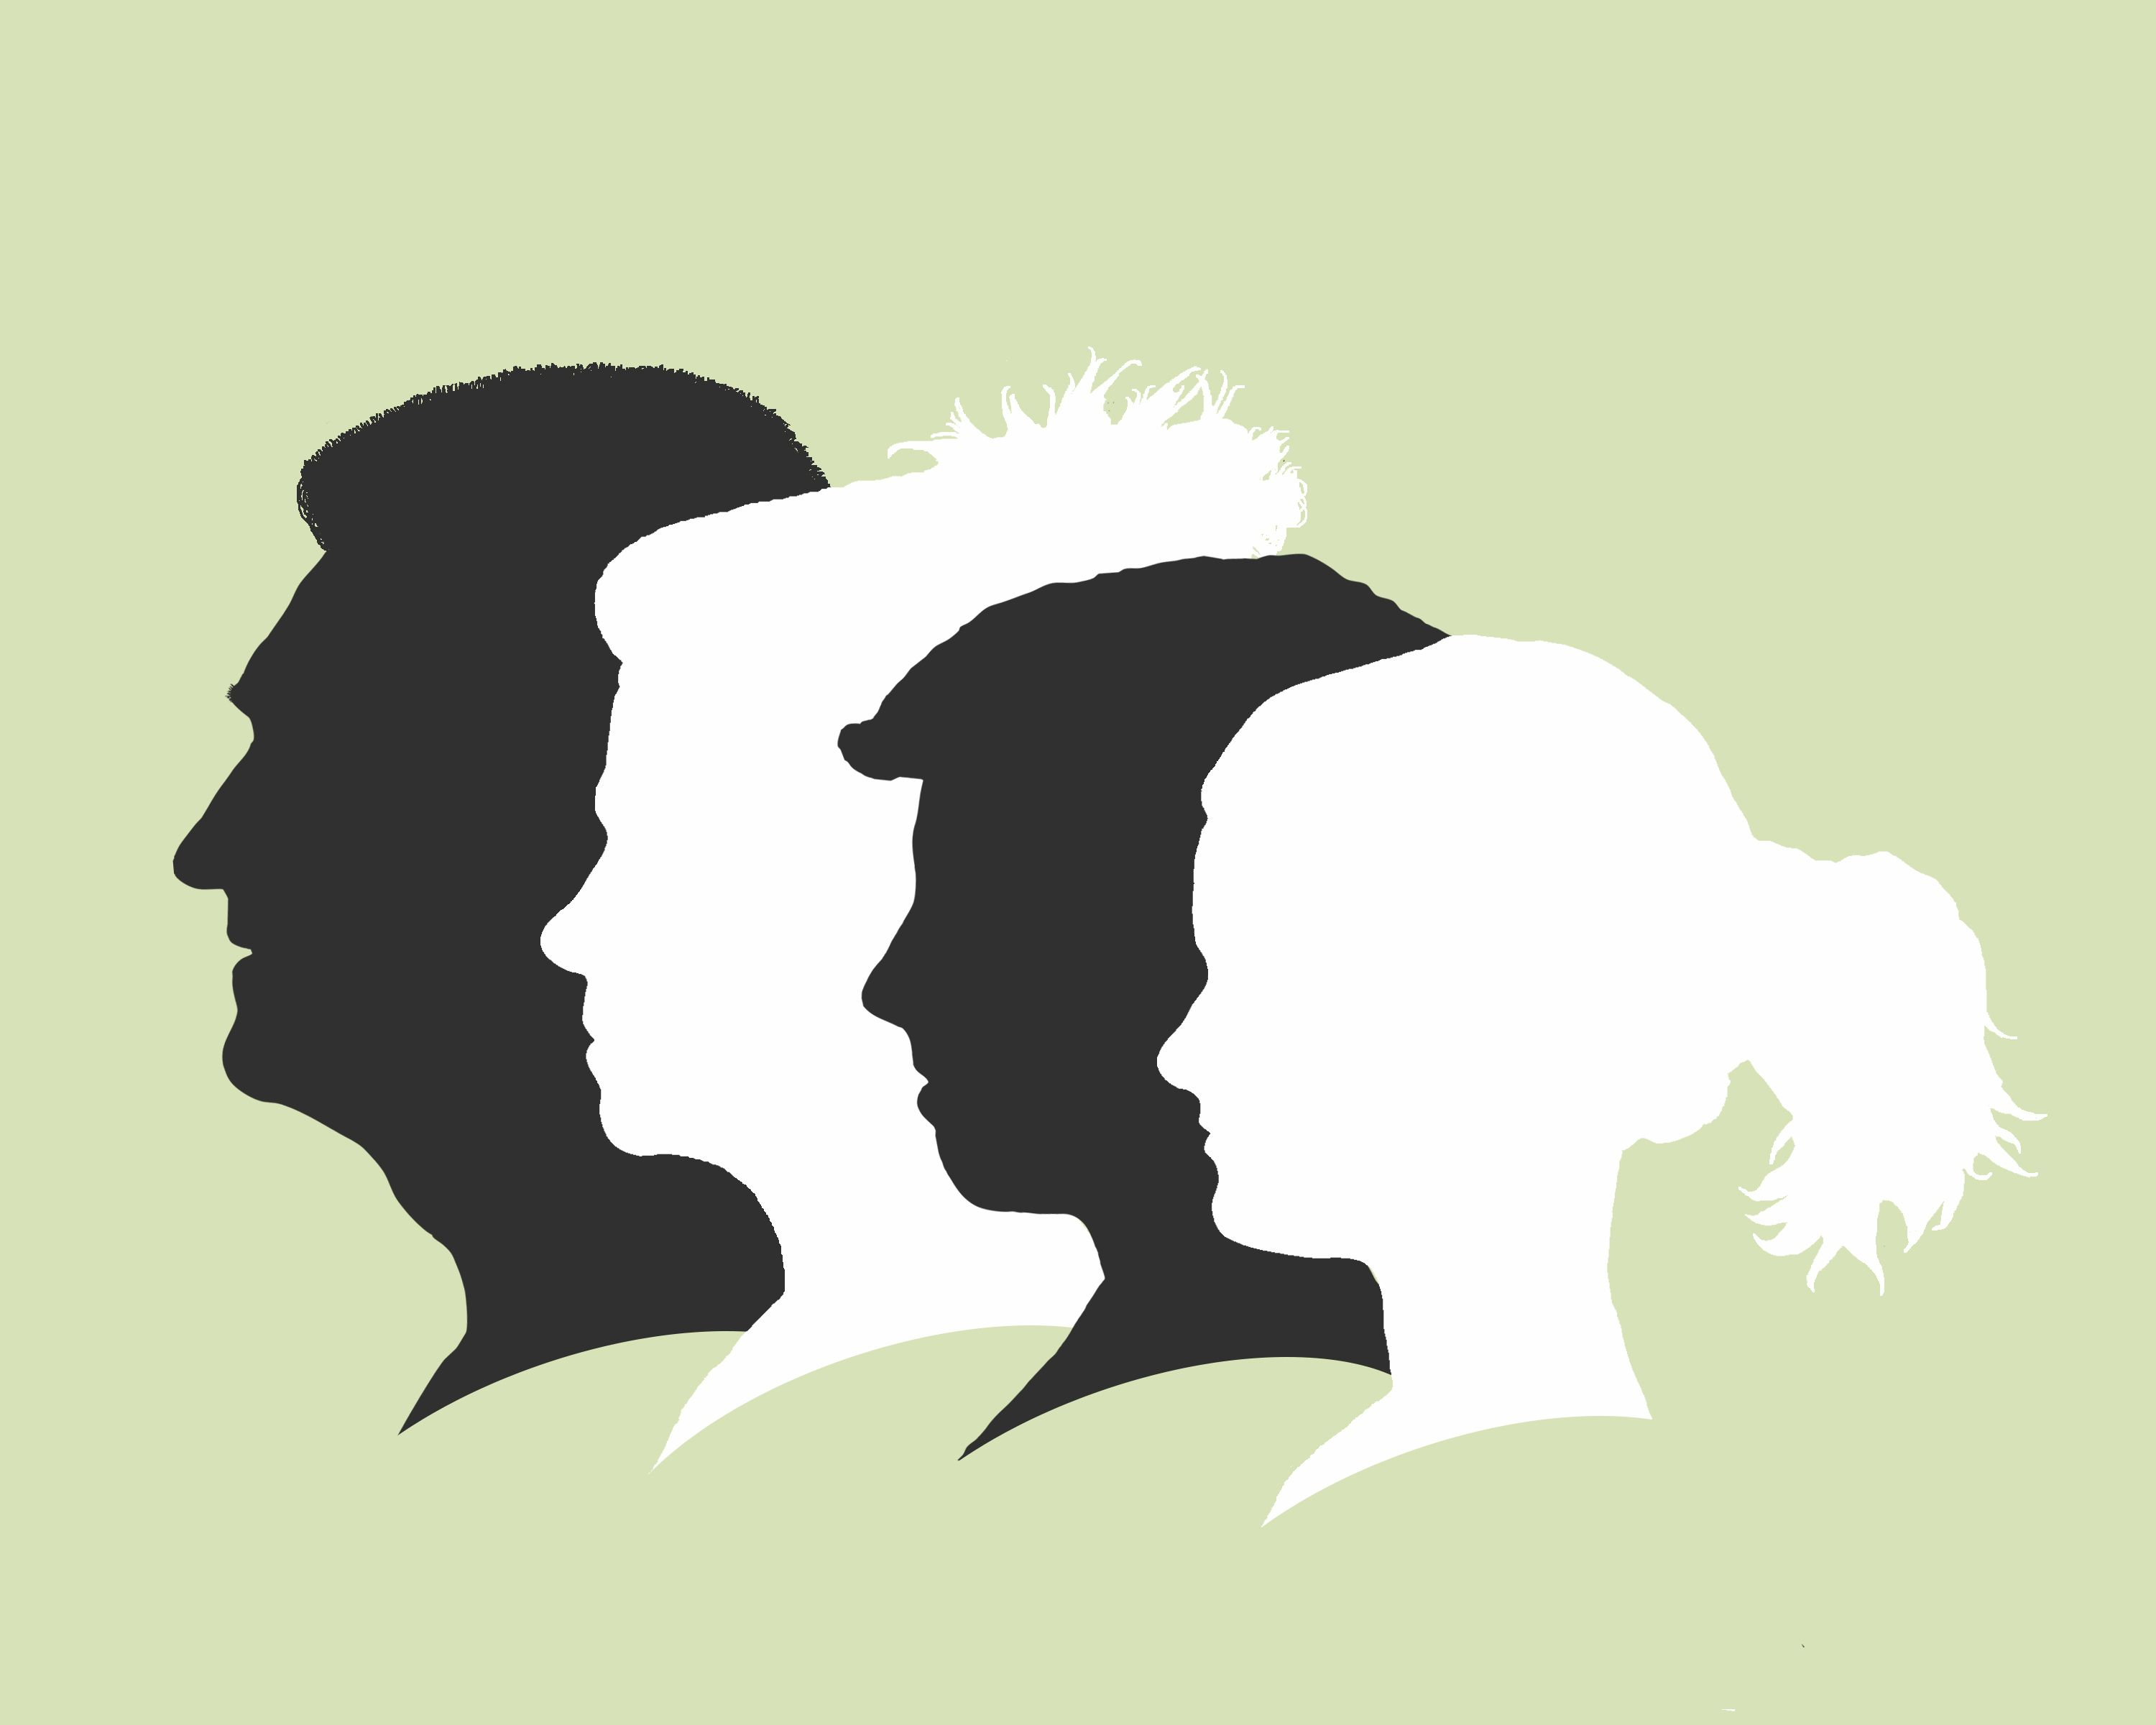 3000x2400 Would love to make one for my family Family silhouette portrait